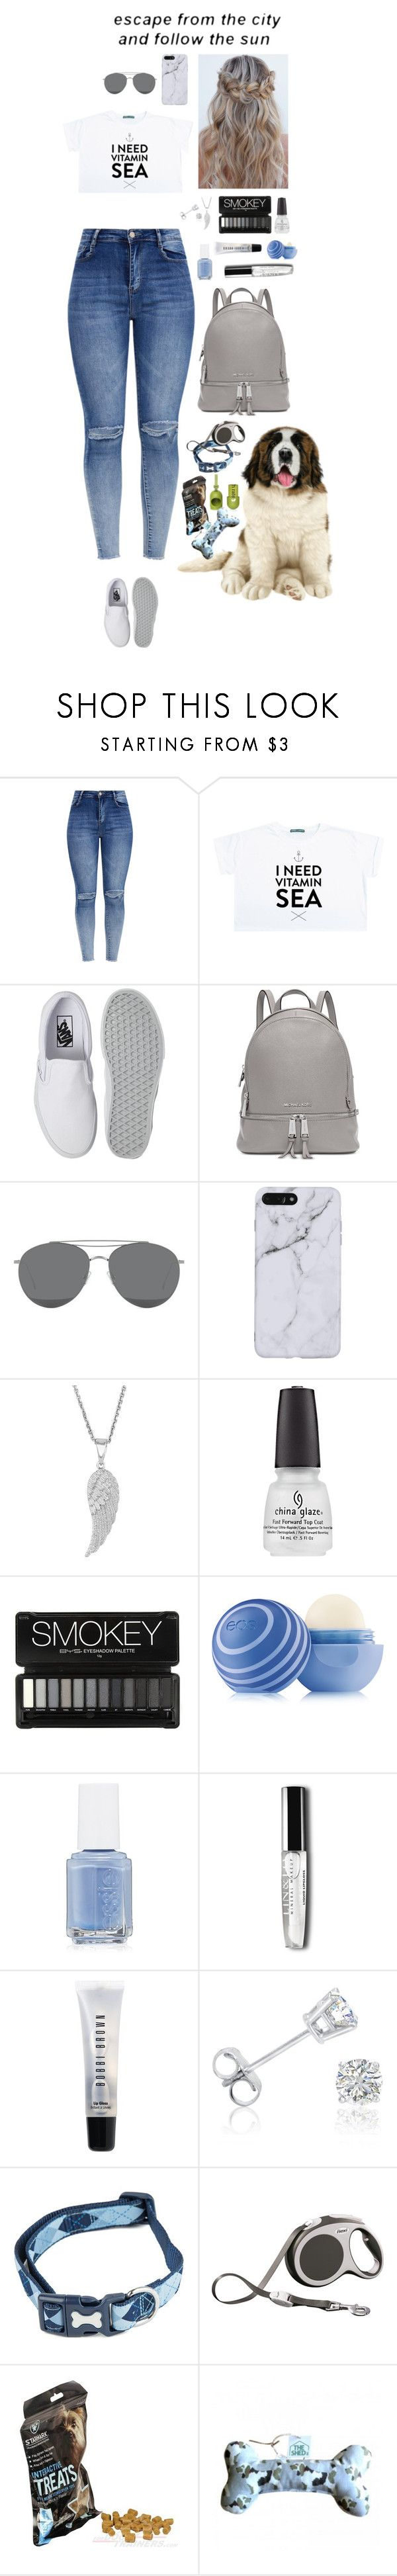 """Untitled #20"" by konoko ❤ liked on Polyvore featuring Vans, Michael Kors, Gentle Monster, Eos, Essie, Bobbi Brown Cosmetics and Amanda Rose Collection"